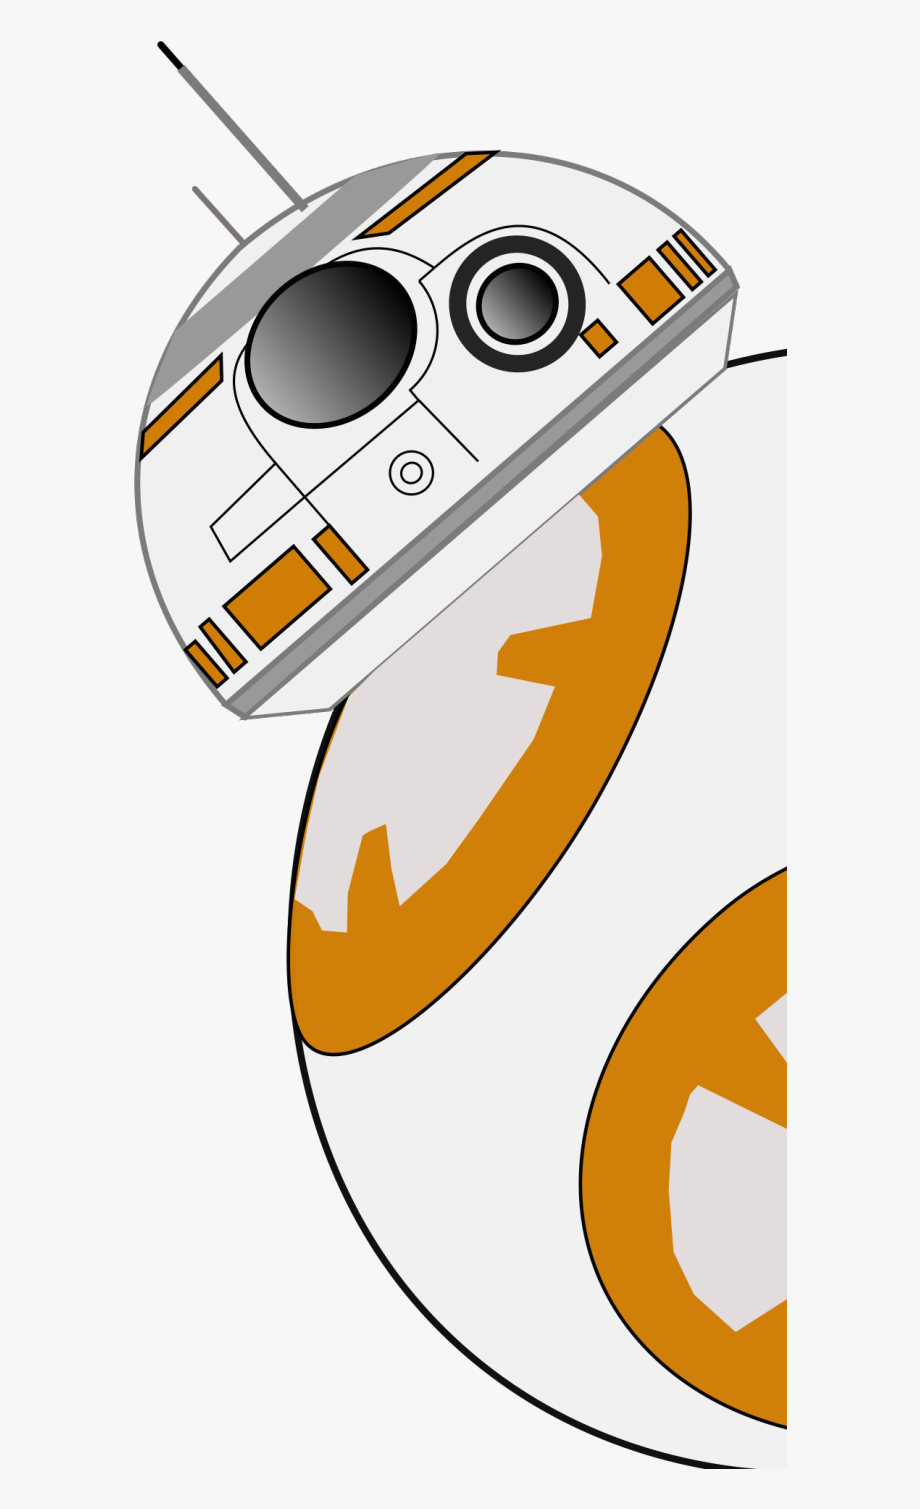 Bb png transparent background. Bb8 clipart star wars